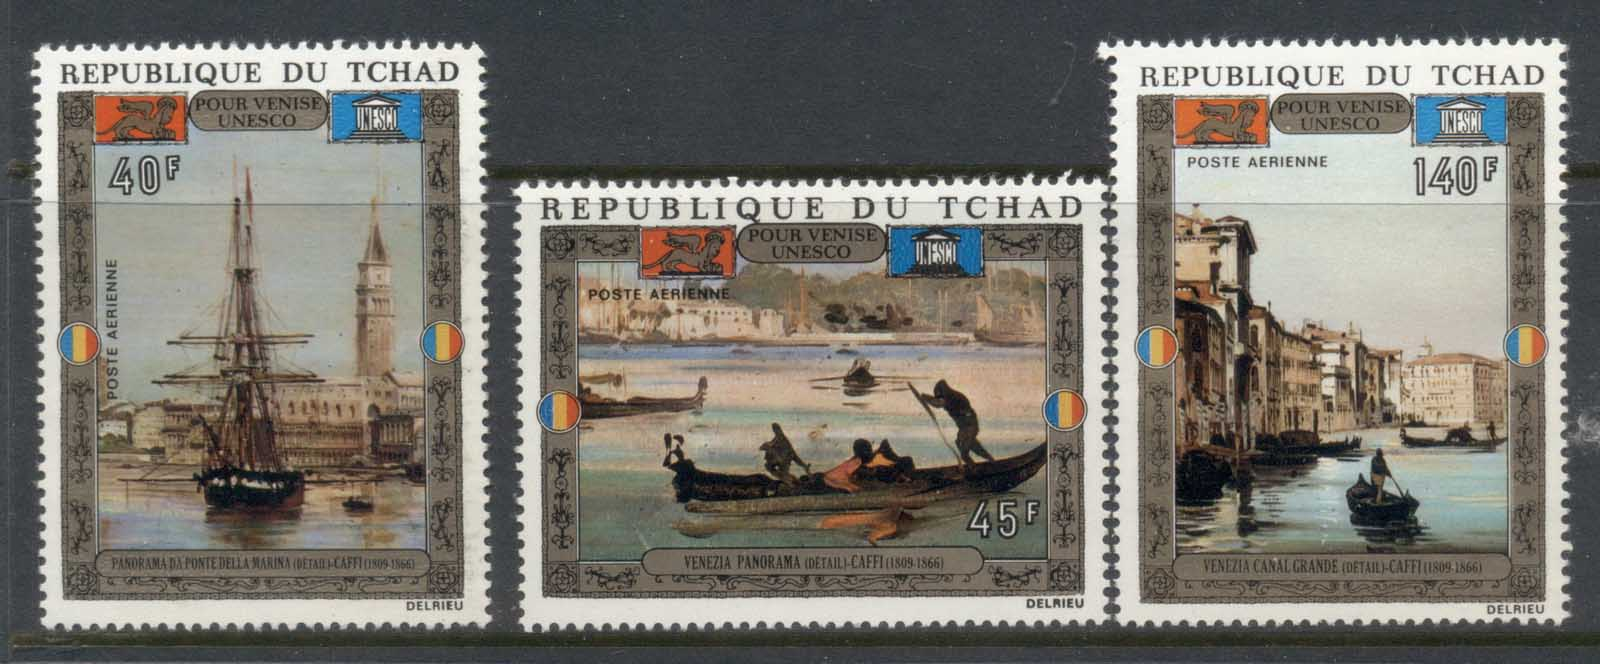 Chad 1972 UNESCO Campaign to Save Venice MUH